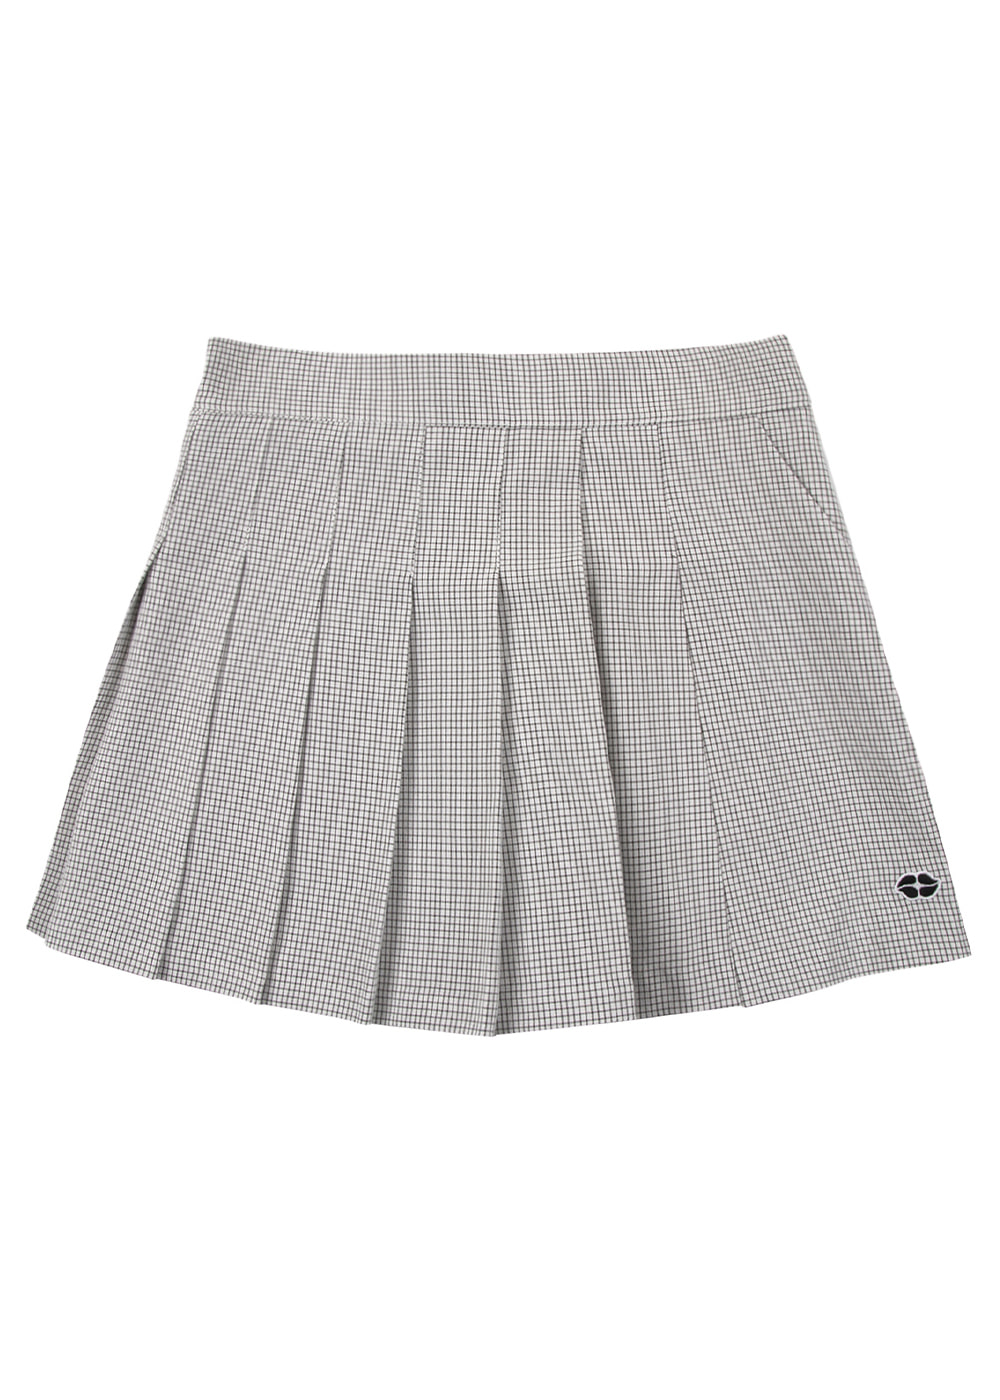 Windowpane Check Pleats Pants Skirt WH